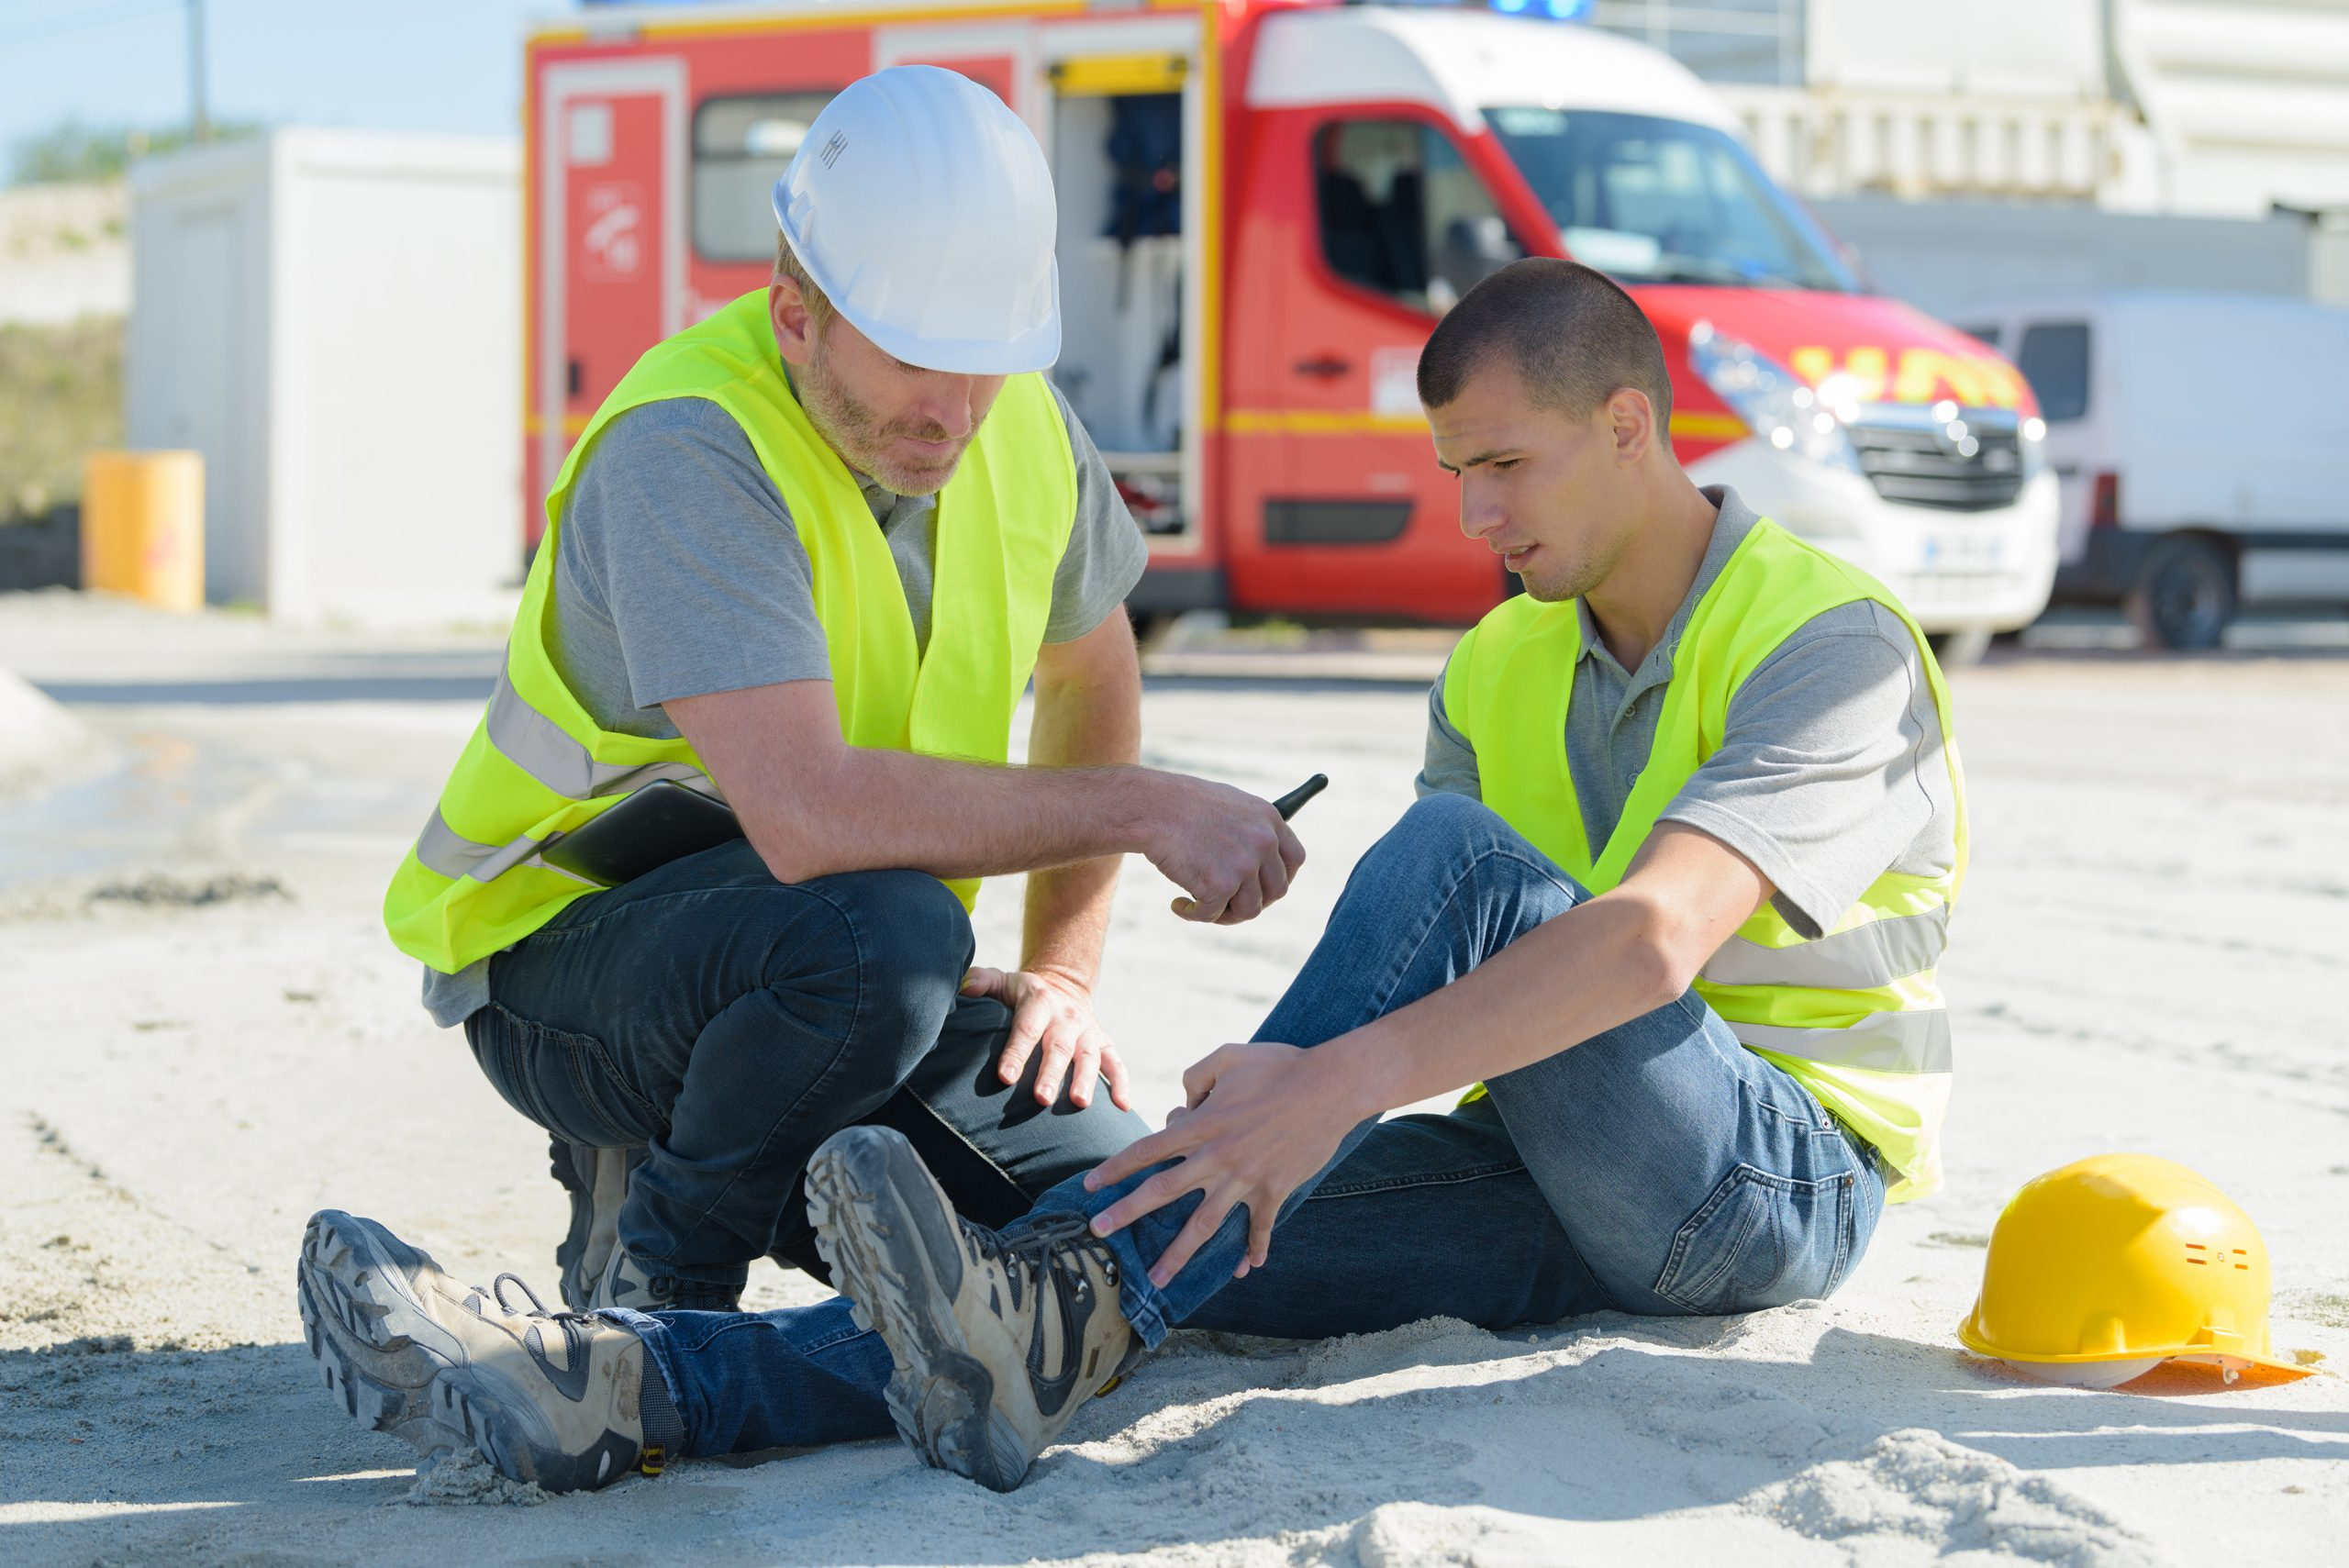 young construction worker on site with injured ankle